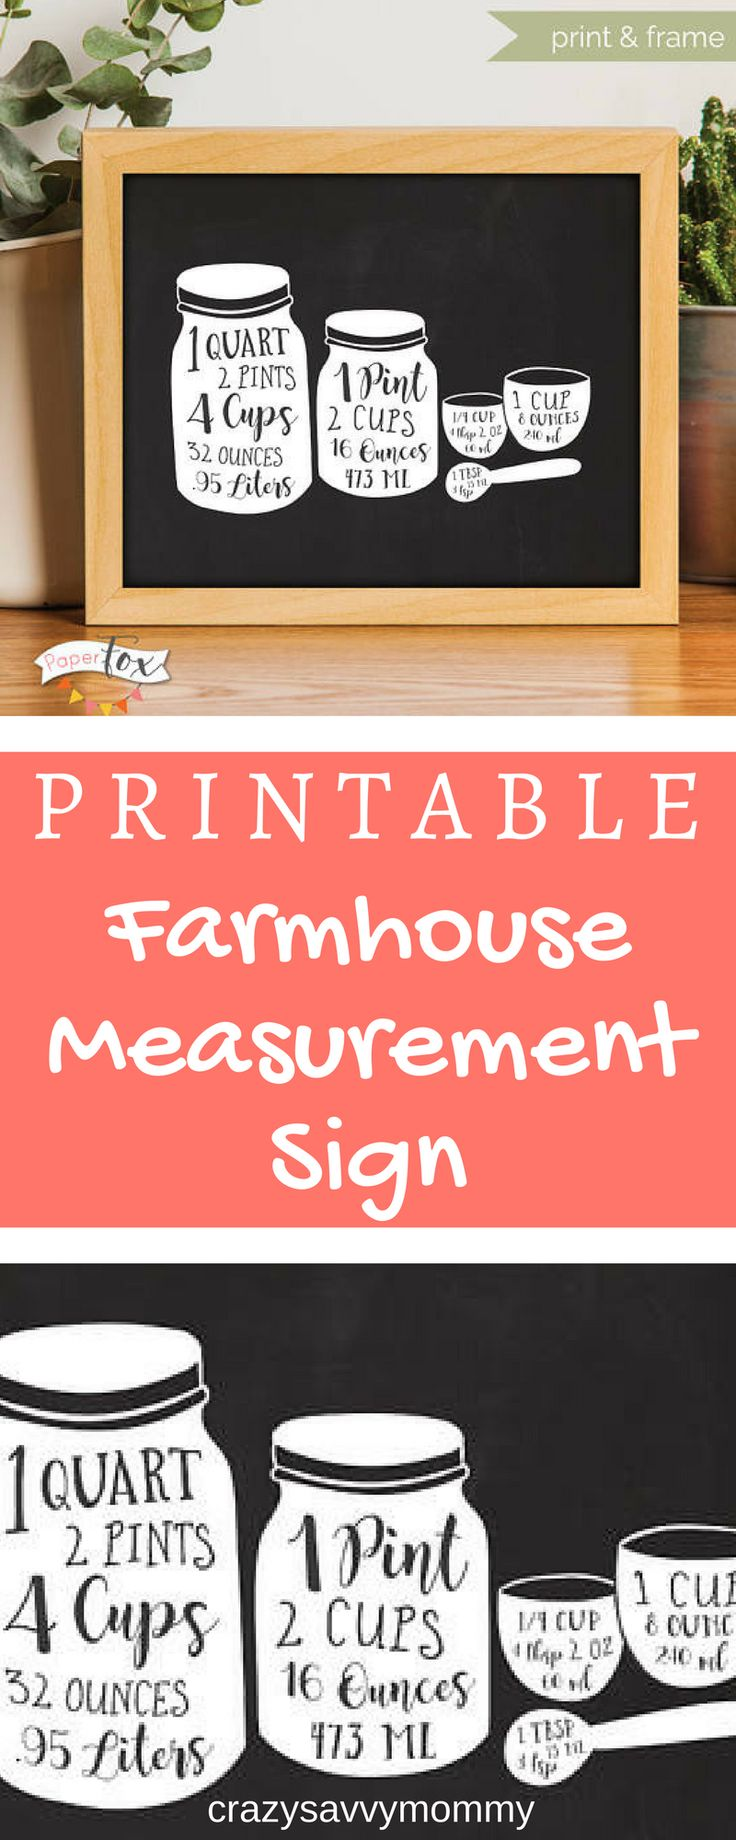 Only 1 99 Printable Farmhouse Measurement Sign Cute